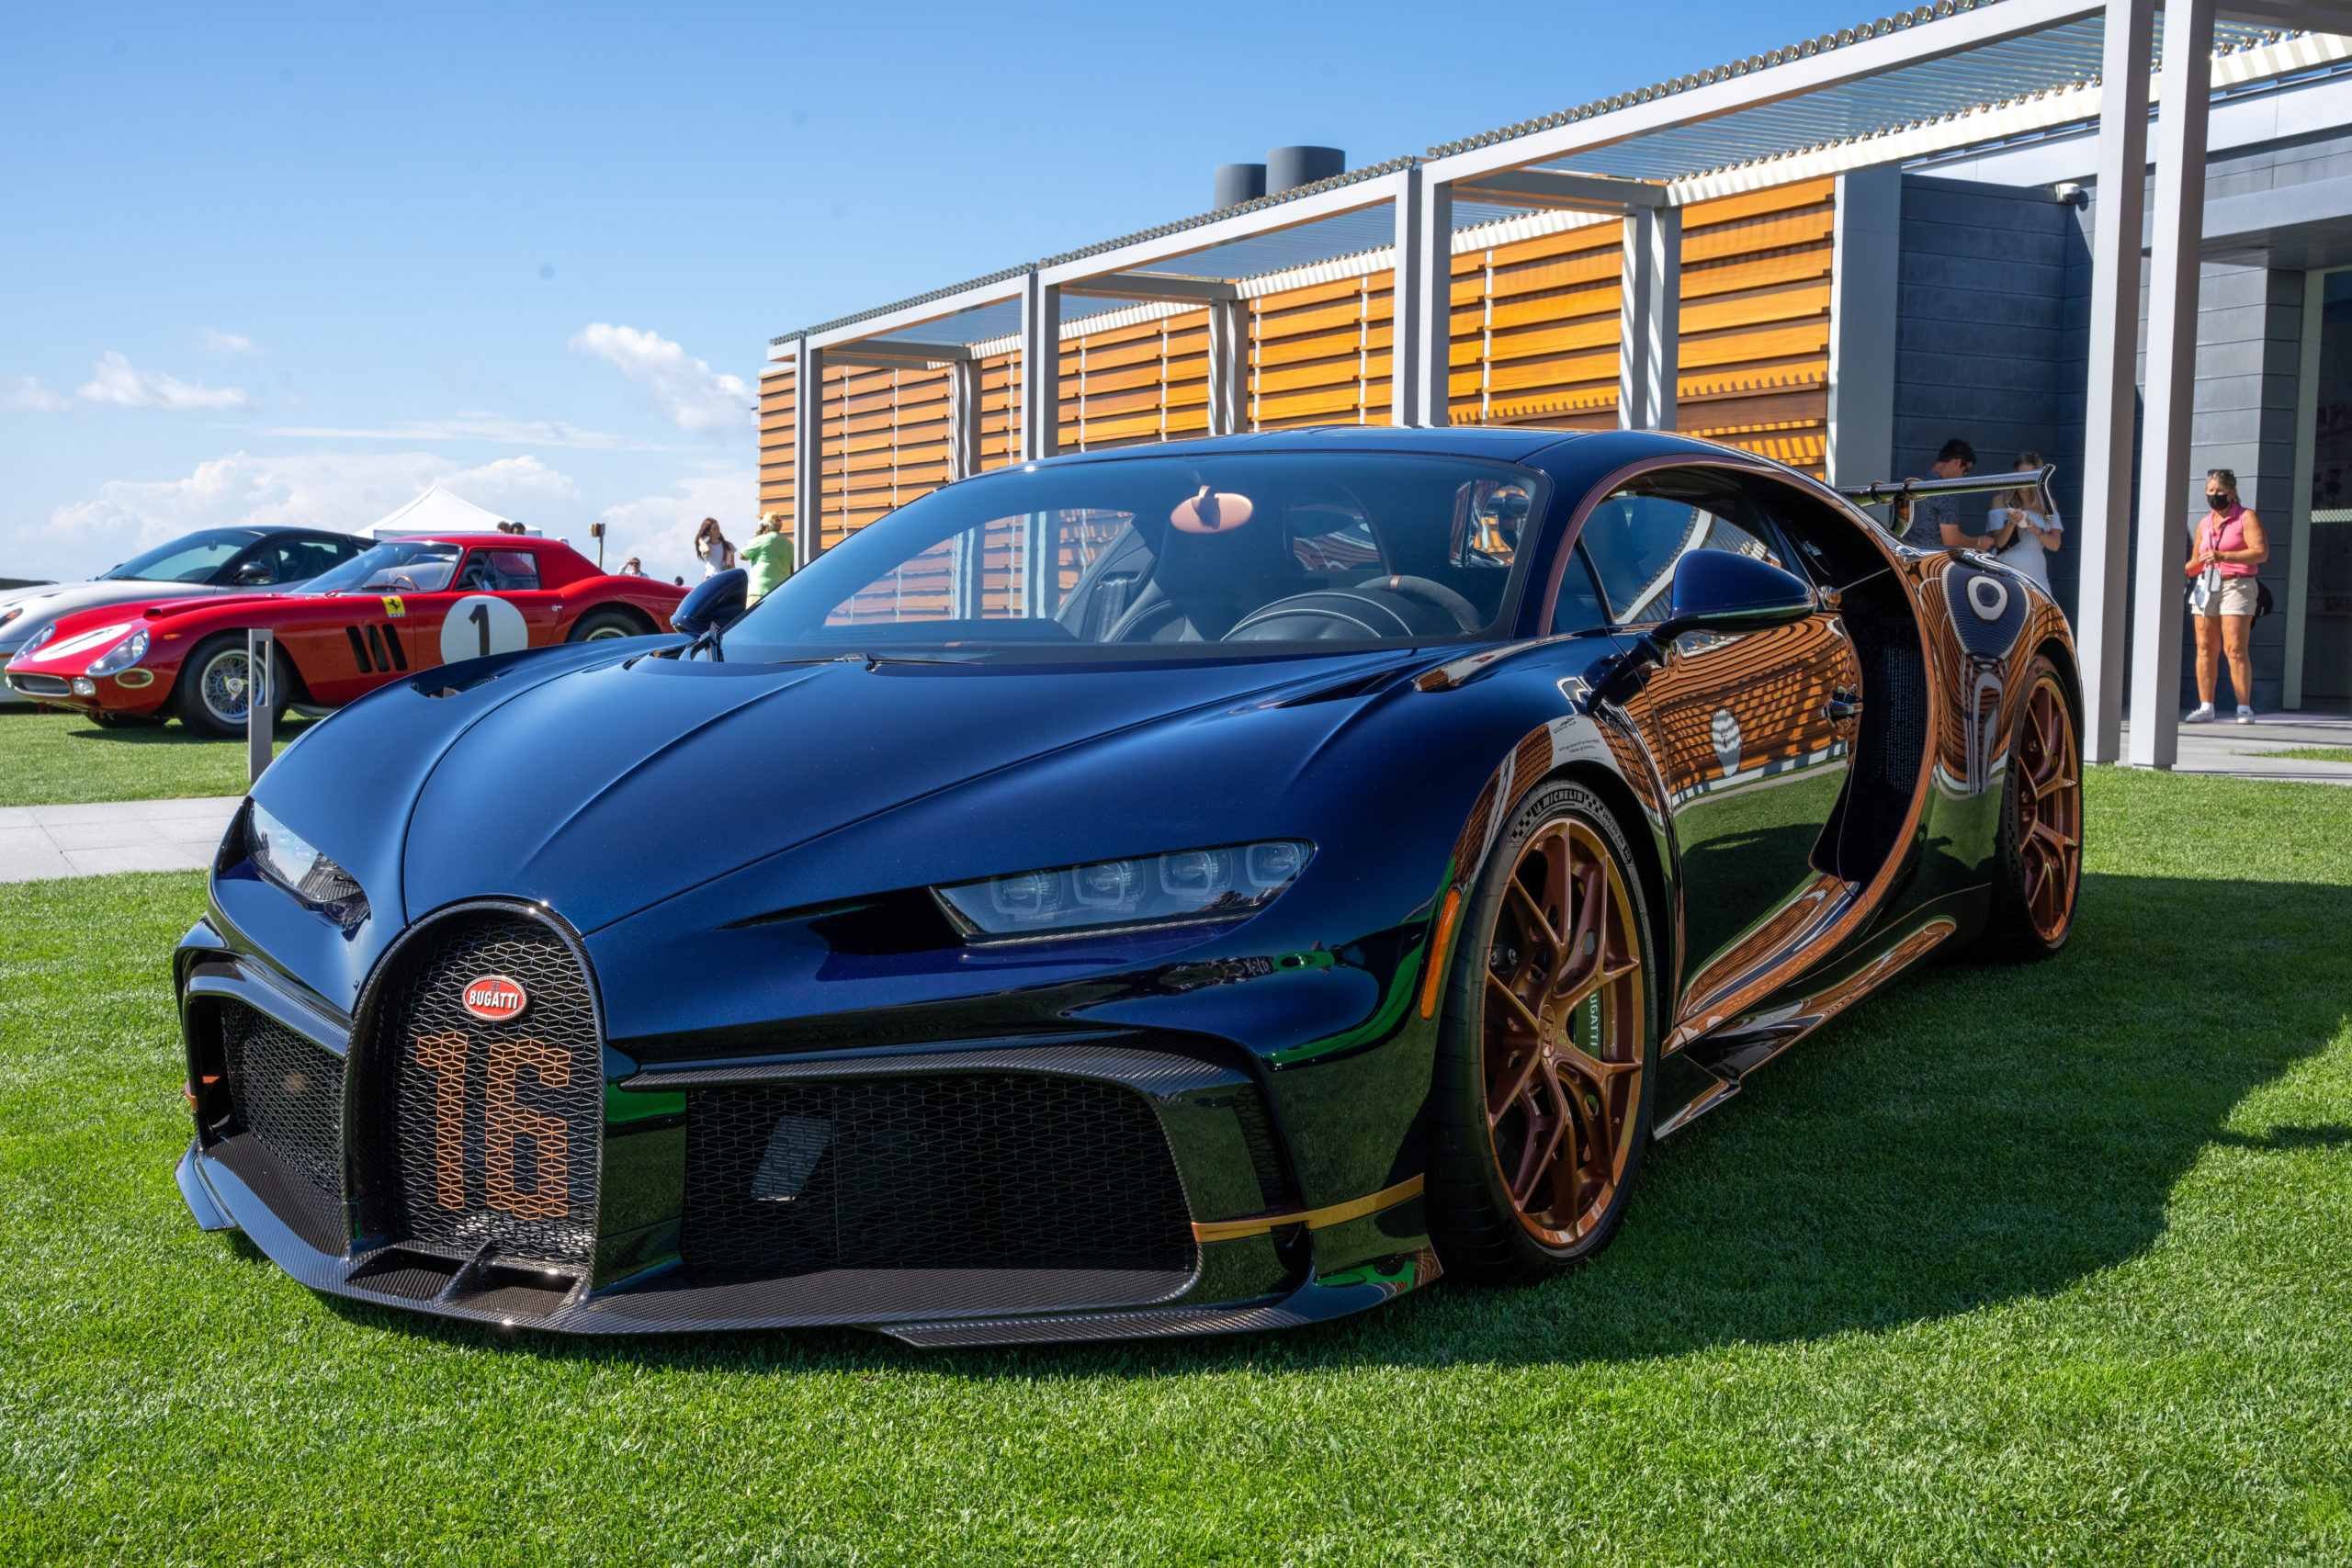 There were several Bugatti's on display on Saturday, three of which were at the entrance to The Bridge.